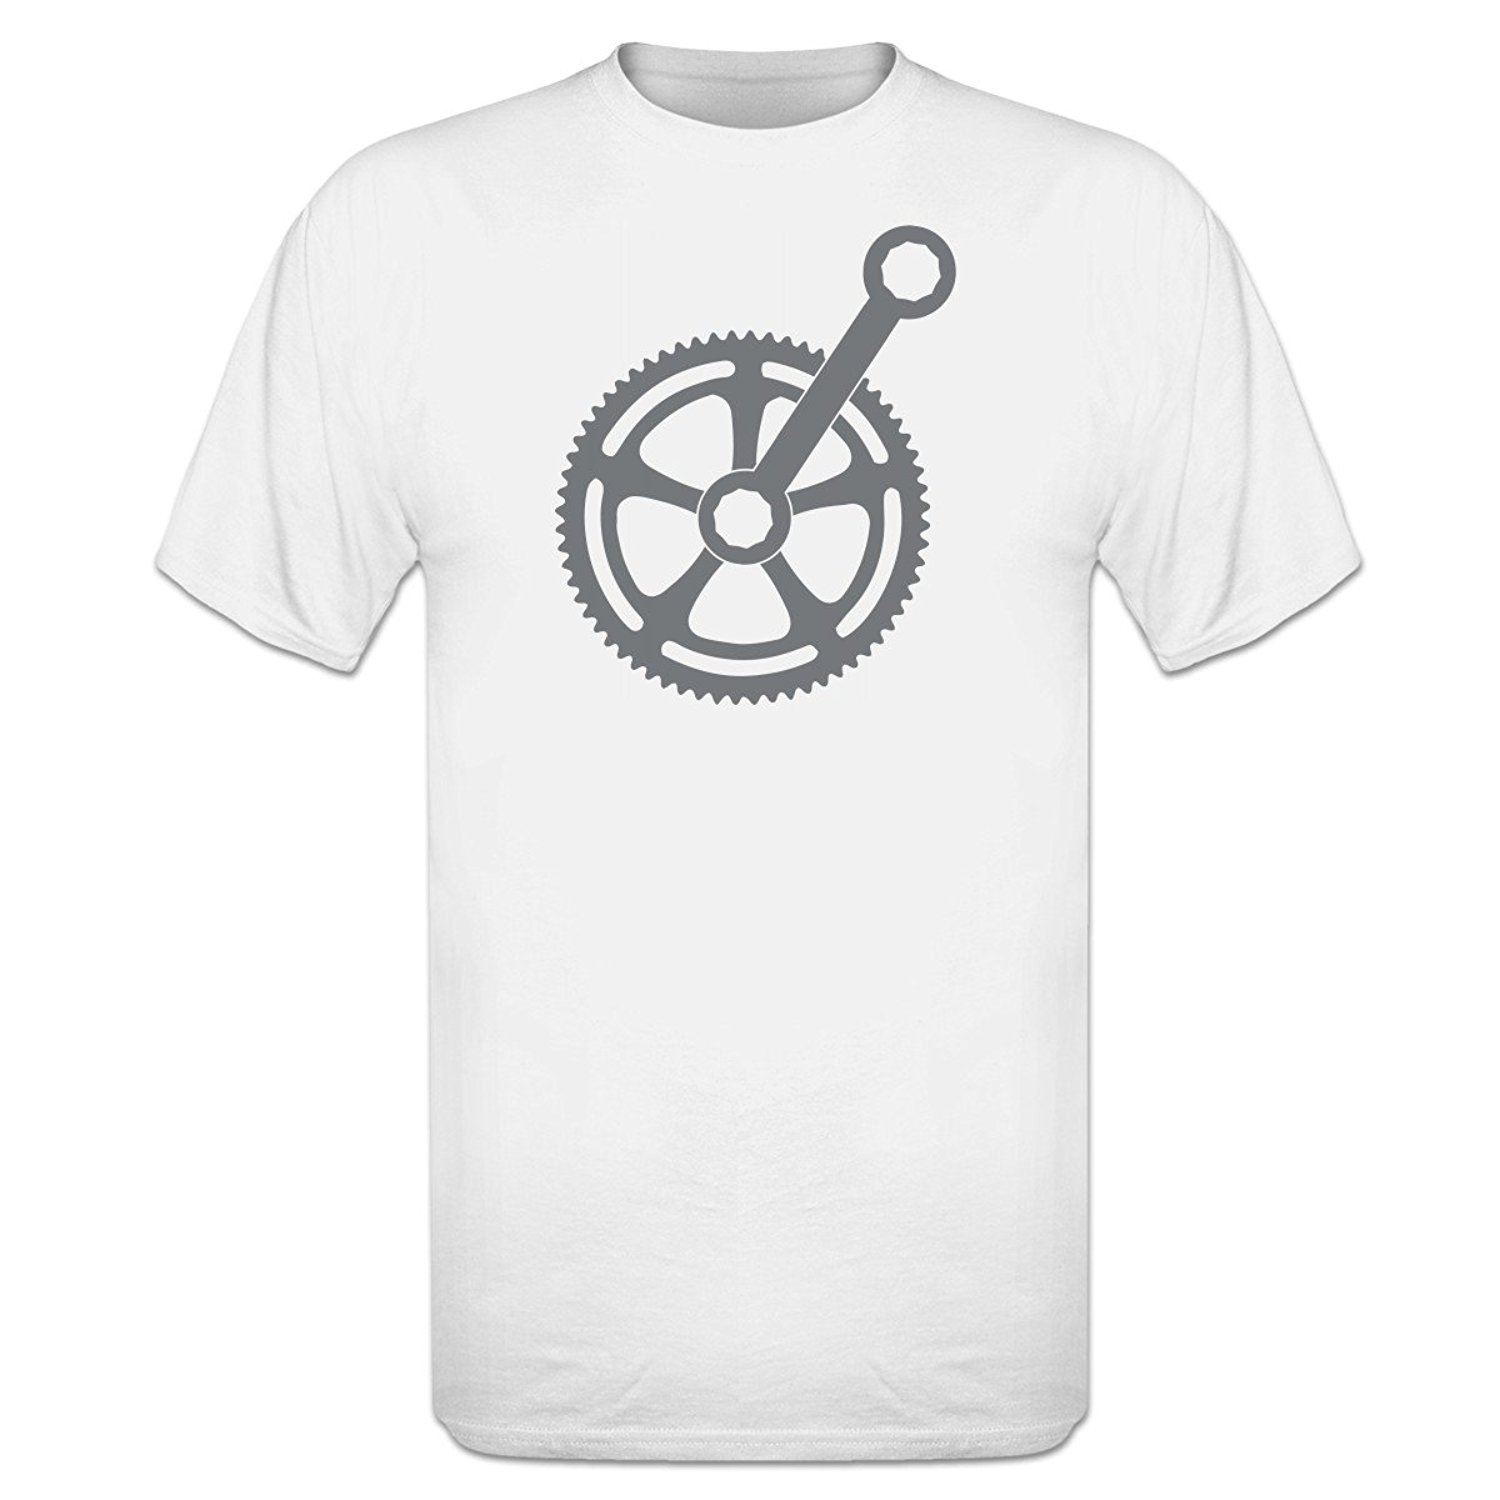 Shirt design tool